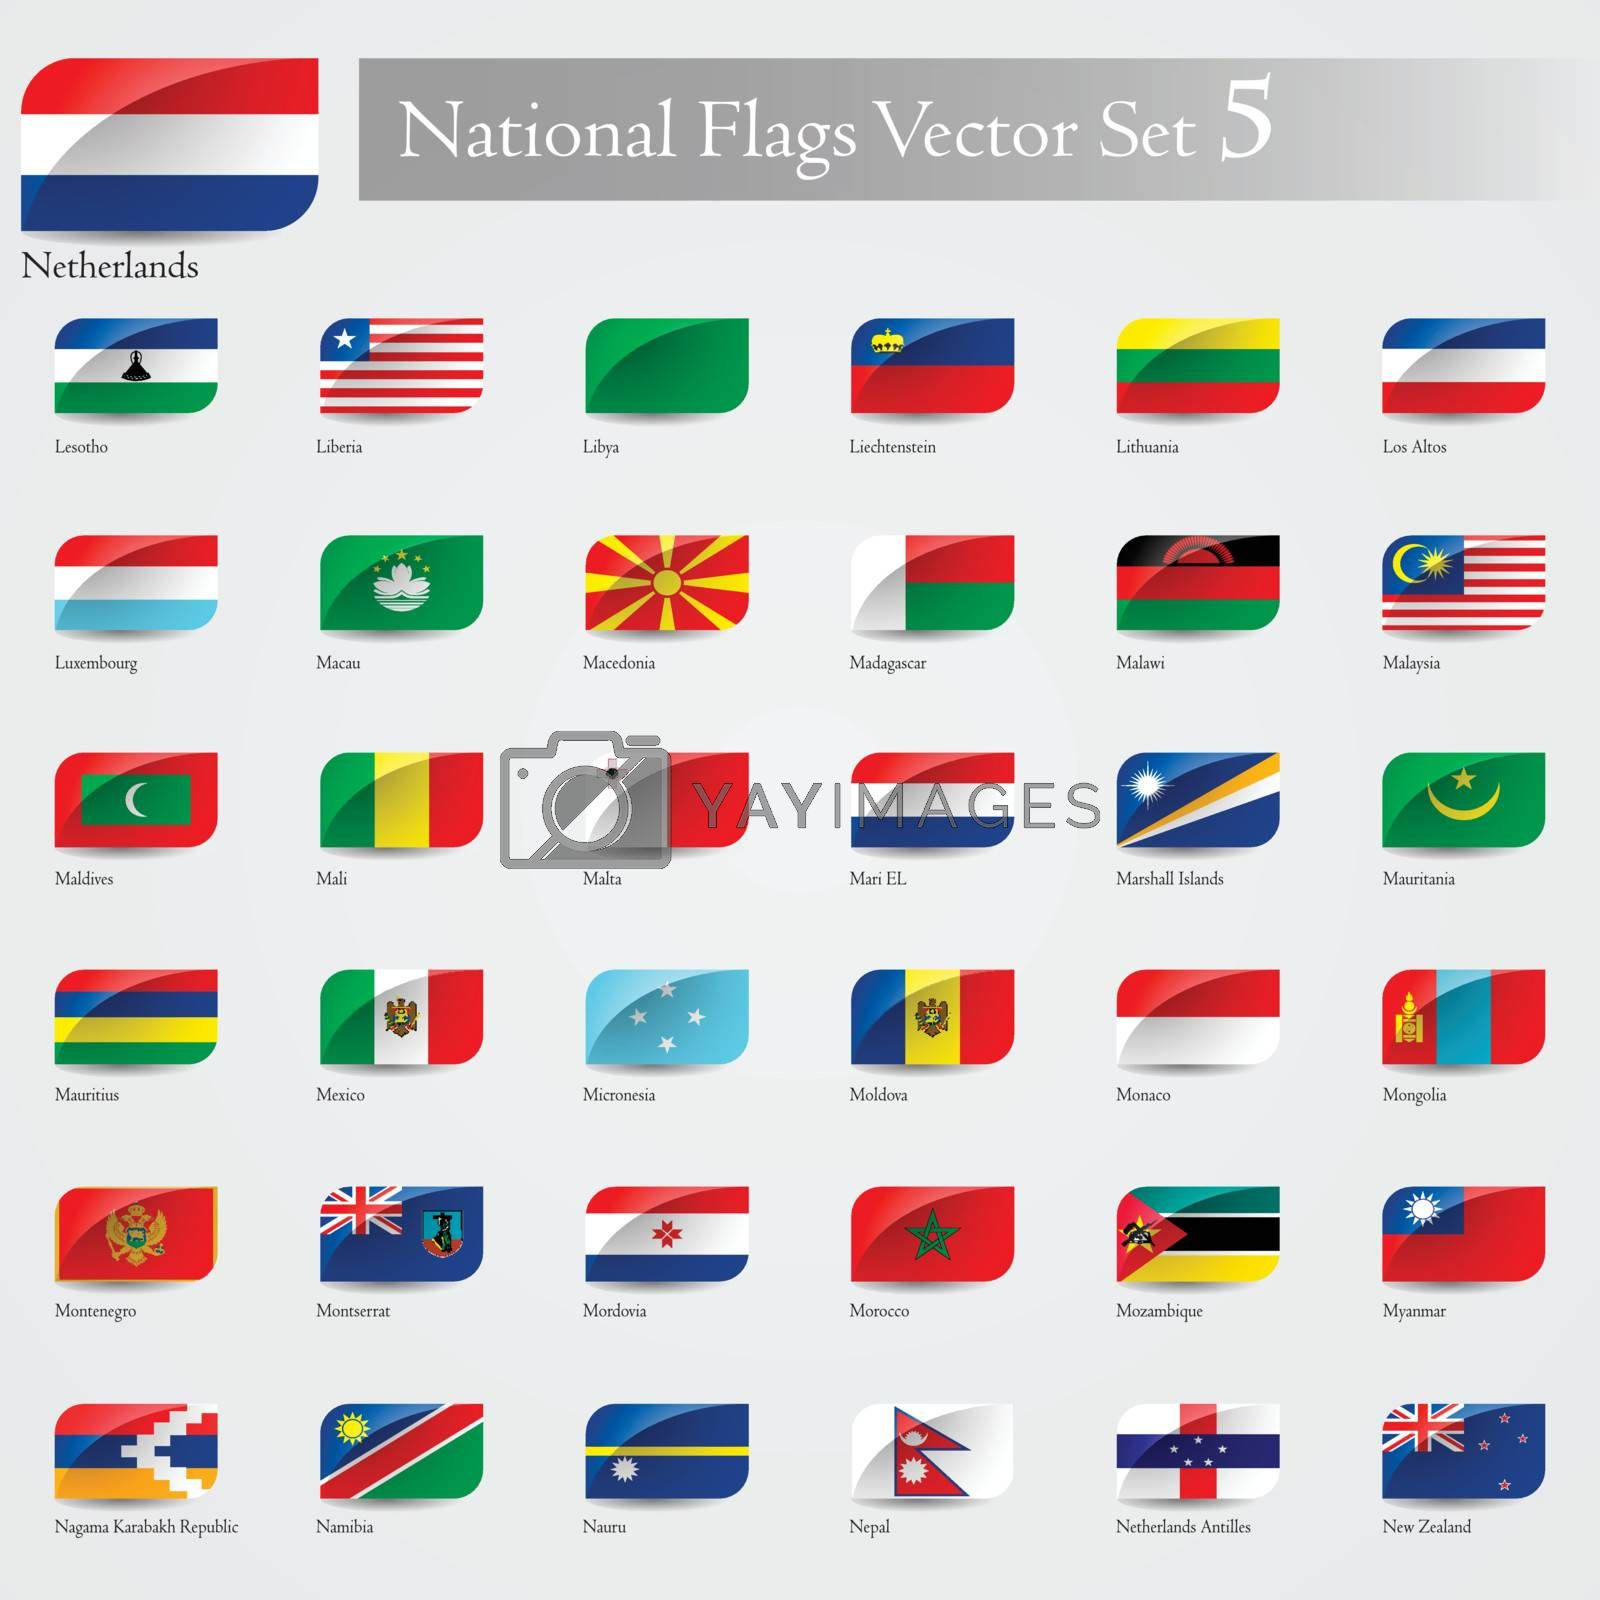 National Flags of the world emboss and round corner set 5